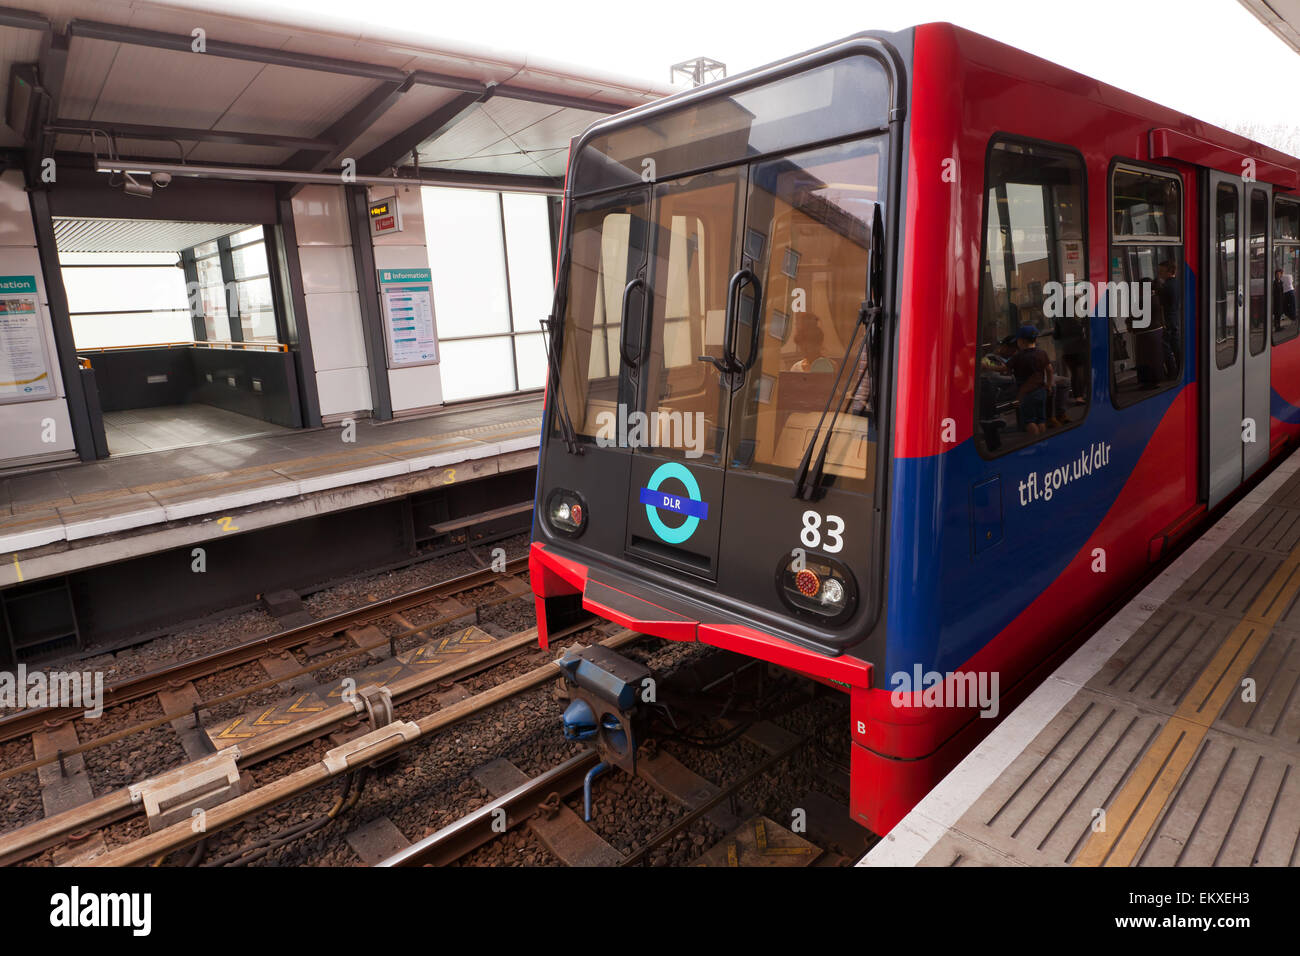 Close-up view of a Docklands Light Railway Train, as it waits at  Westferry  DLR Station. - Stock Image